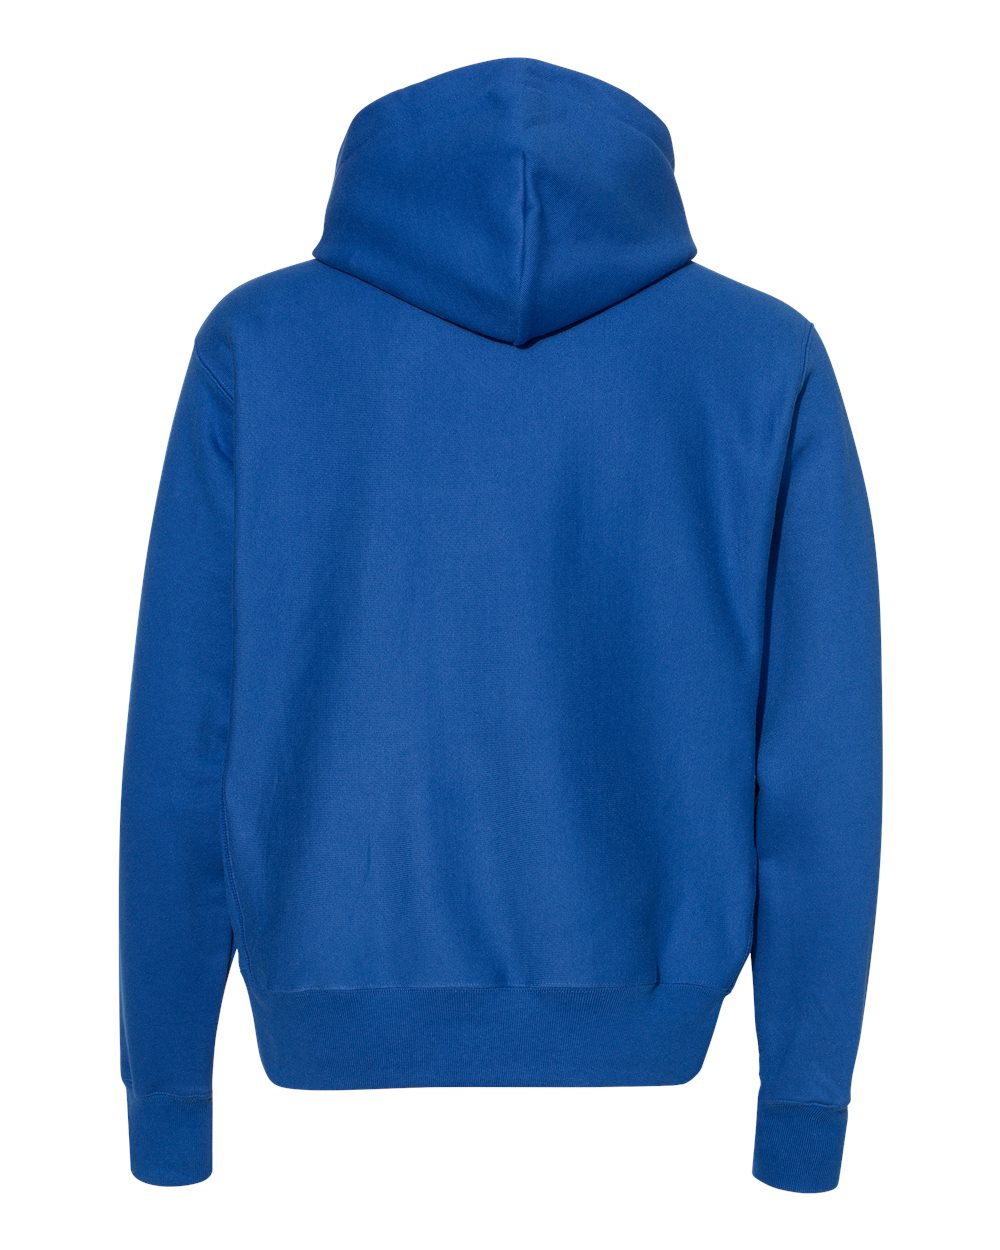 Champion-Mens-Reverse-Weave-Hooded-Pullover-Sweatshirt-S101-up-to-3XL thumbnail 7